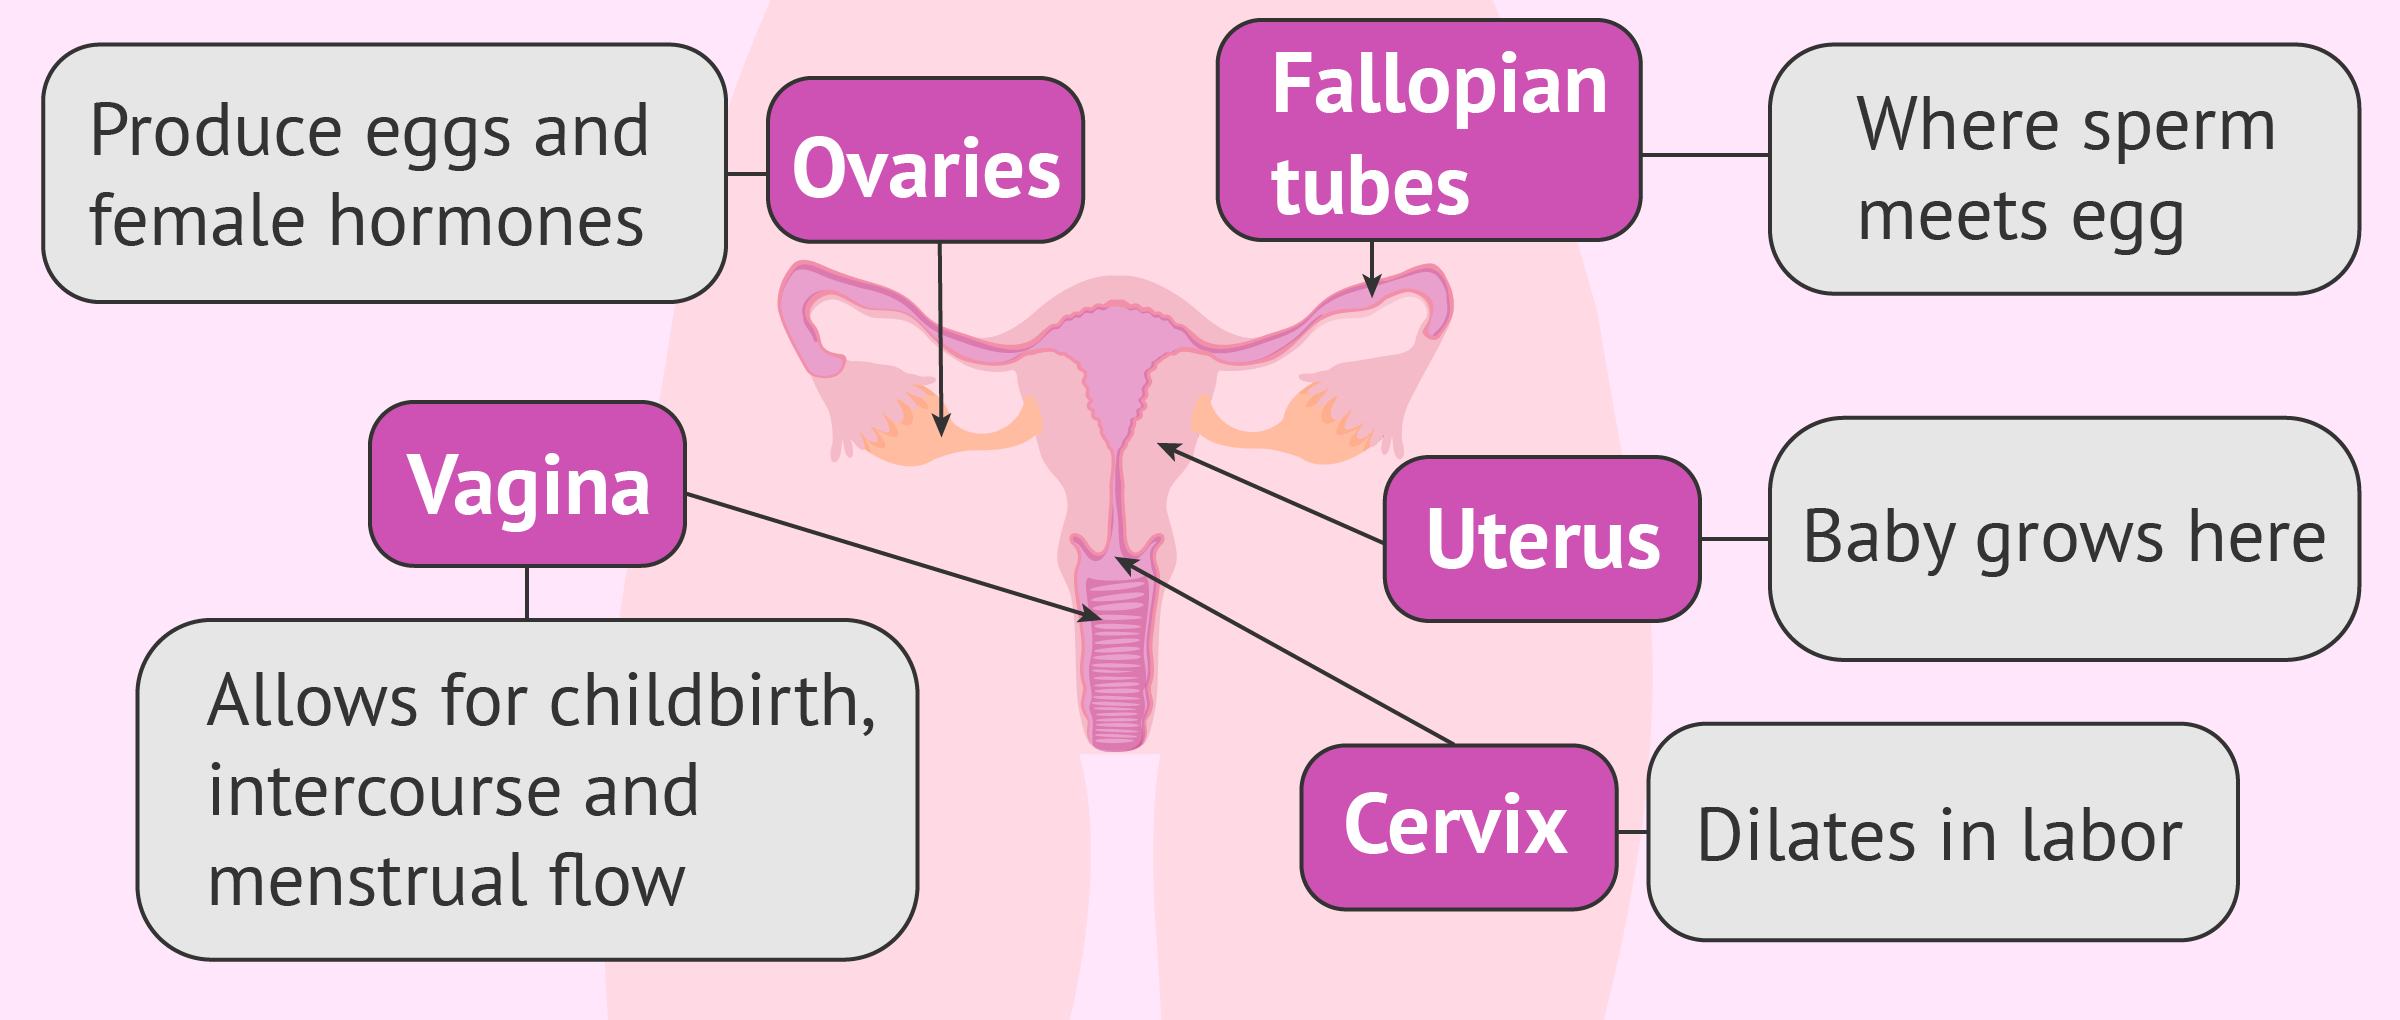 Female Fertility - Parts & Functions of the Female Reproductive System